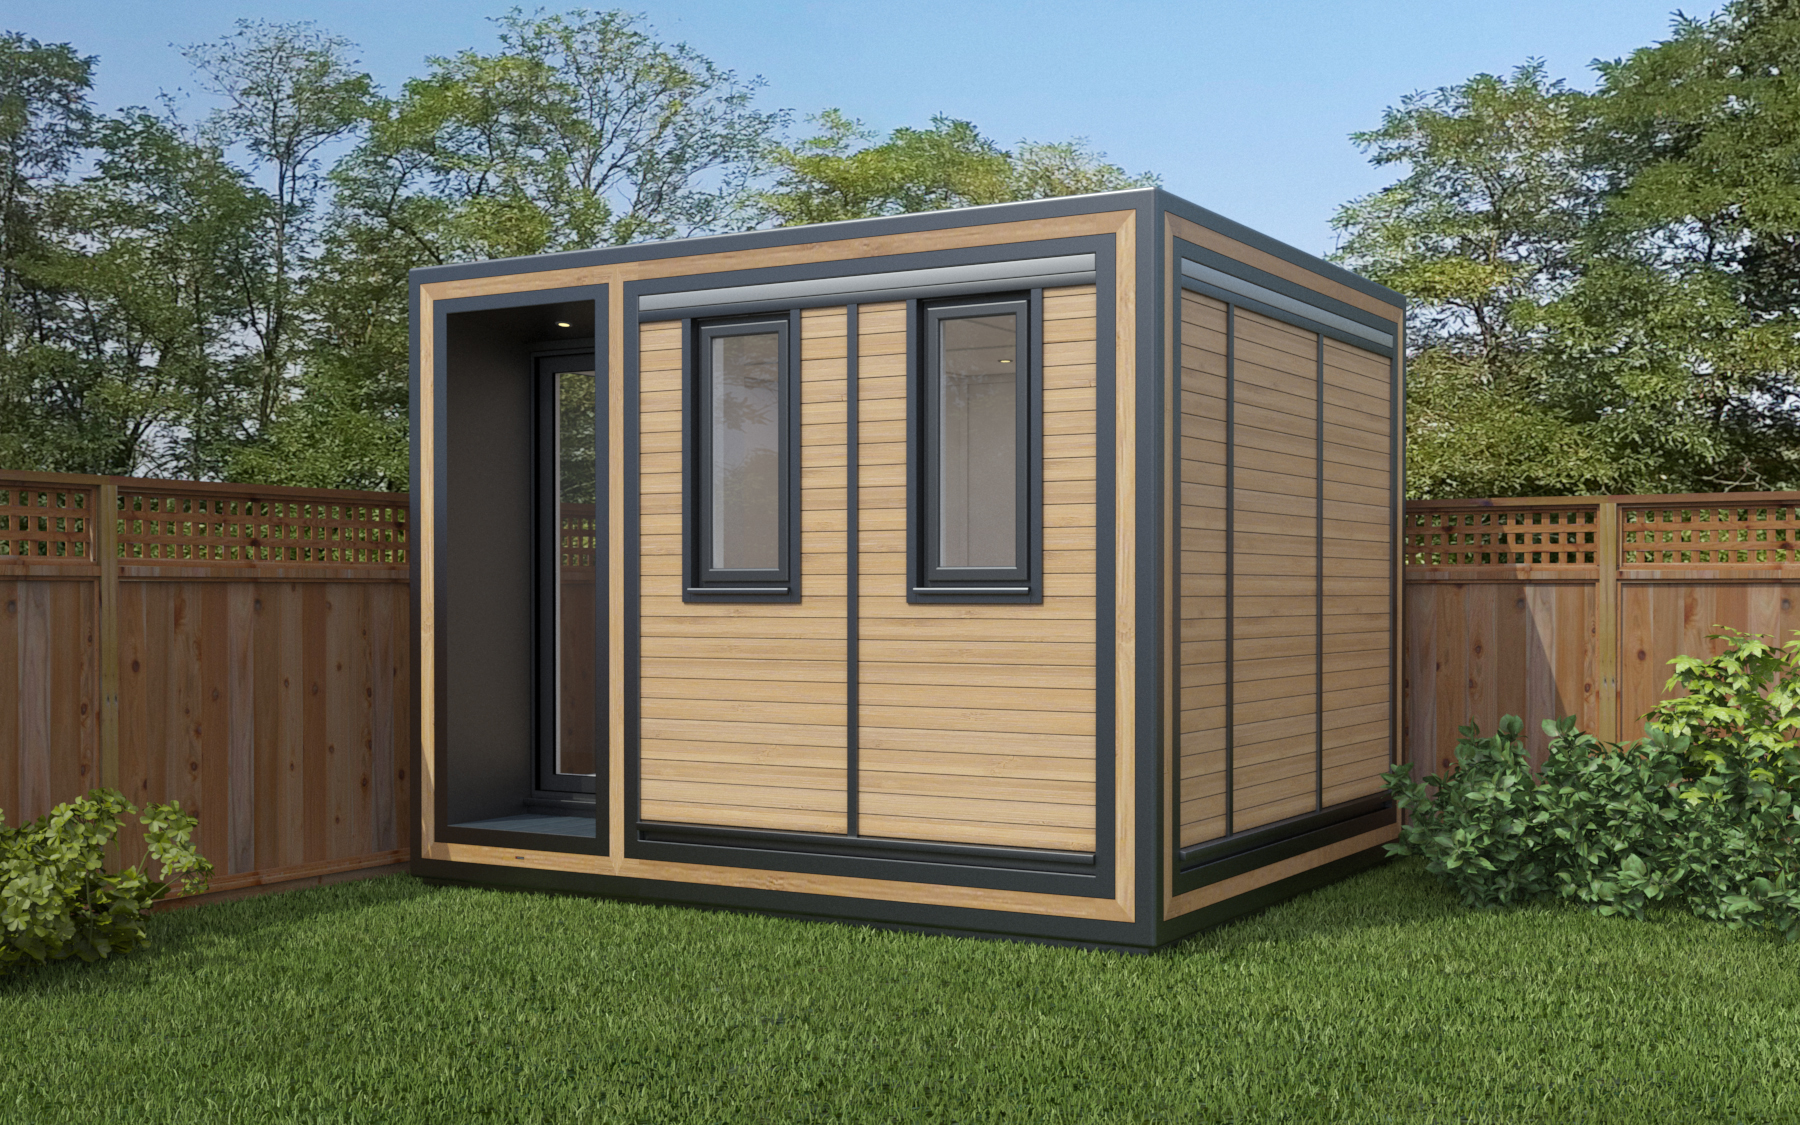 ZEDBOX 325  (3 x 2.5)  Internal Size: 3188 x 2720  External Size: 3658 x 3190  Bed Options: Single  Kitchen Options: N/A  Wet Room Options: Yes  Portico: Yes  Price:  £18,000    Optional Extras    Request Zedbox Catalogue